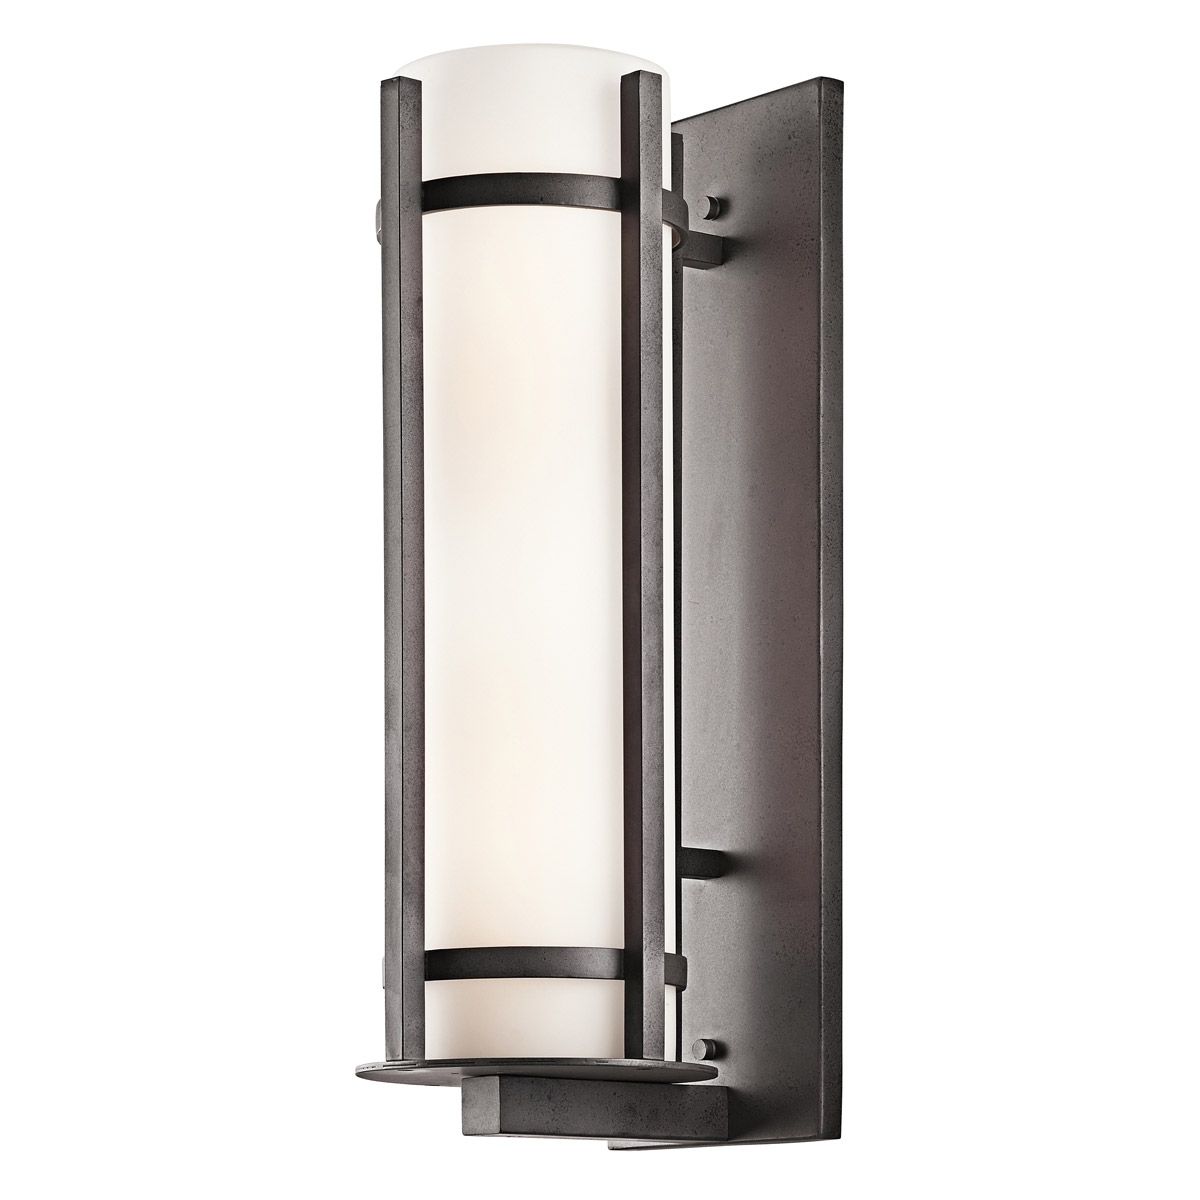 Kichler Outdoor Lighting Wall Sconces Inside Most Popular 49121avi Camden Outdoor Wall Sconce (View 9 of 20)